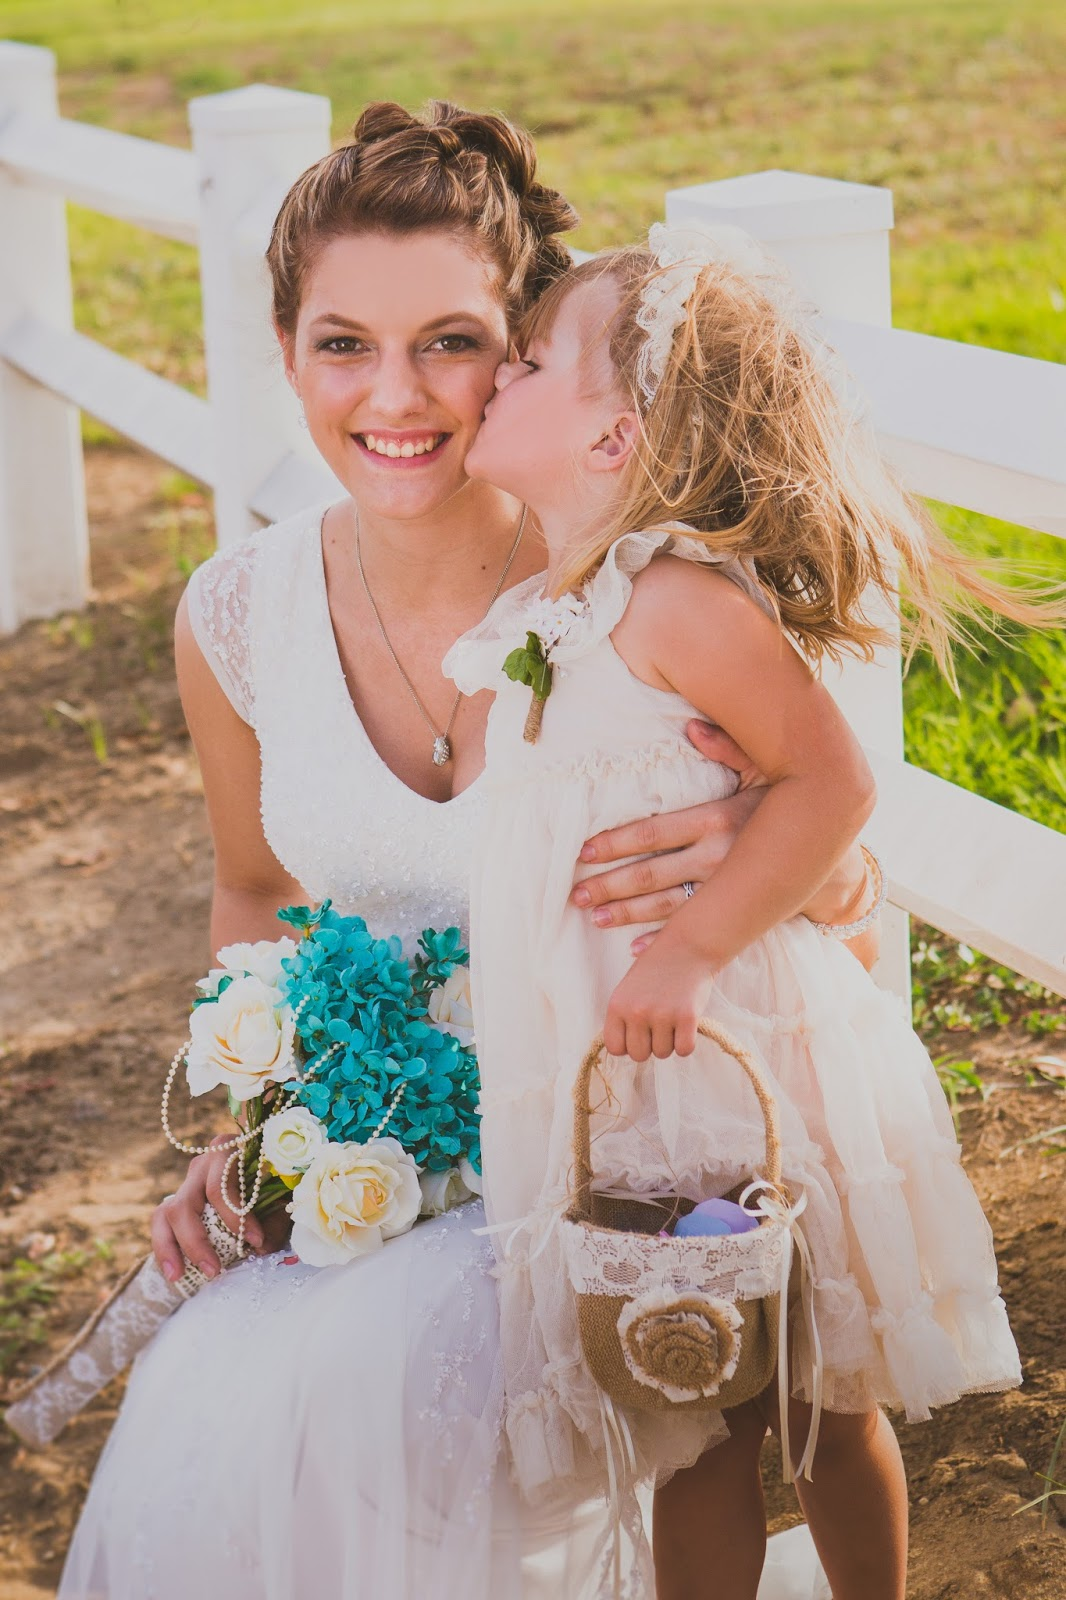 flower girl kisses the bride on the cheek